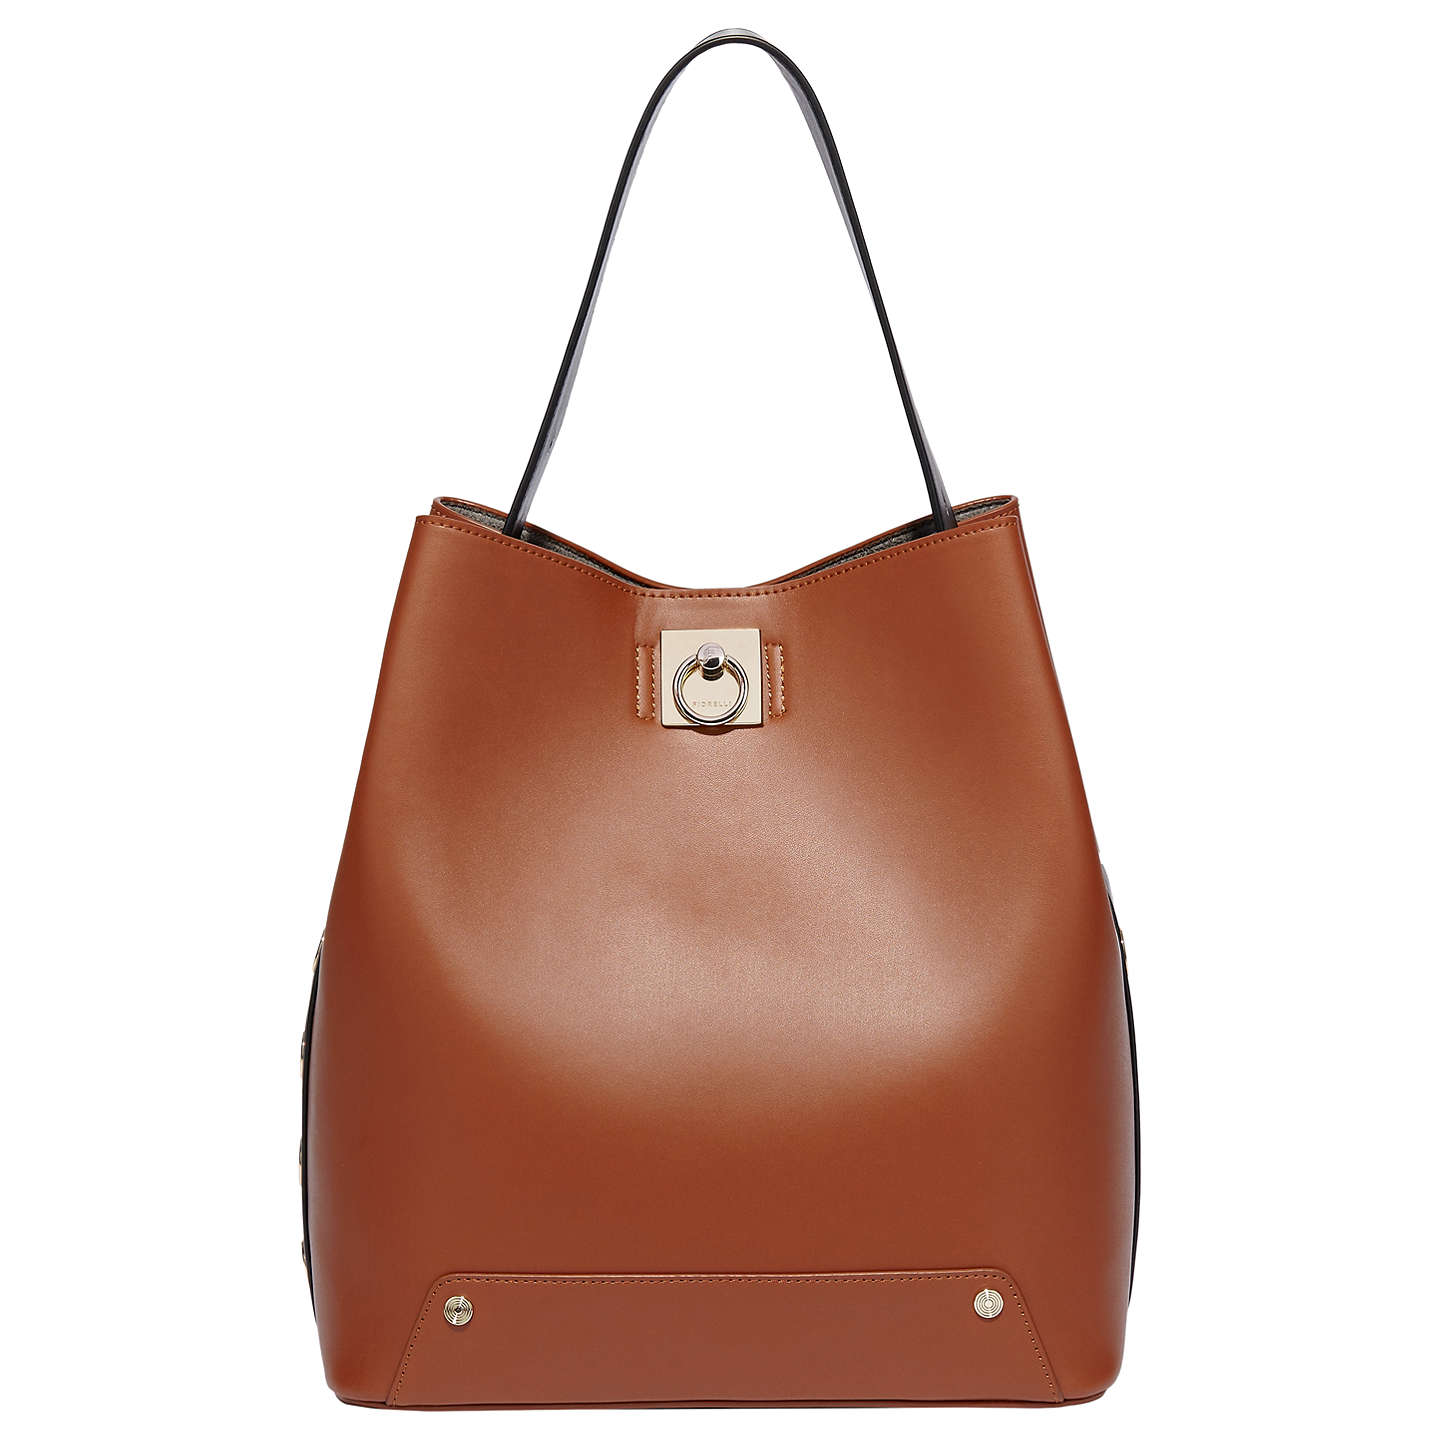 BuyFiorelli Fae Hobo Bag, Tan Online at johnlewis.com